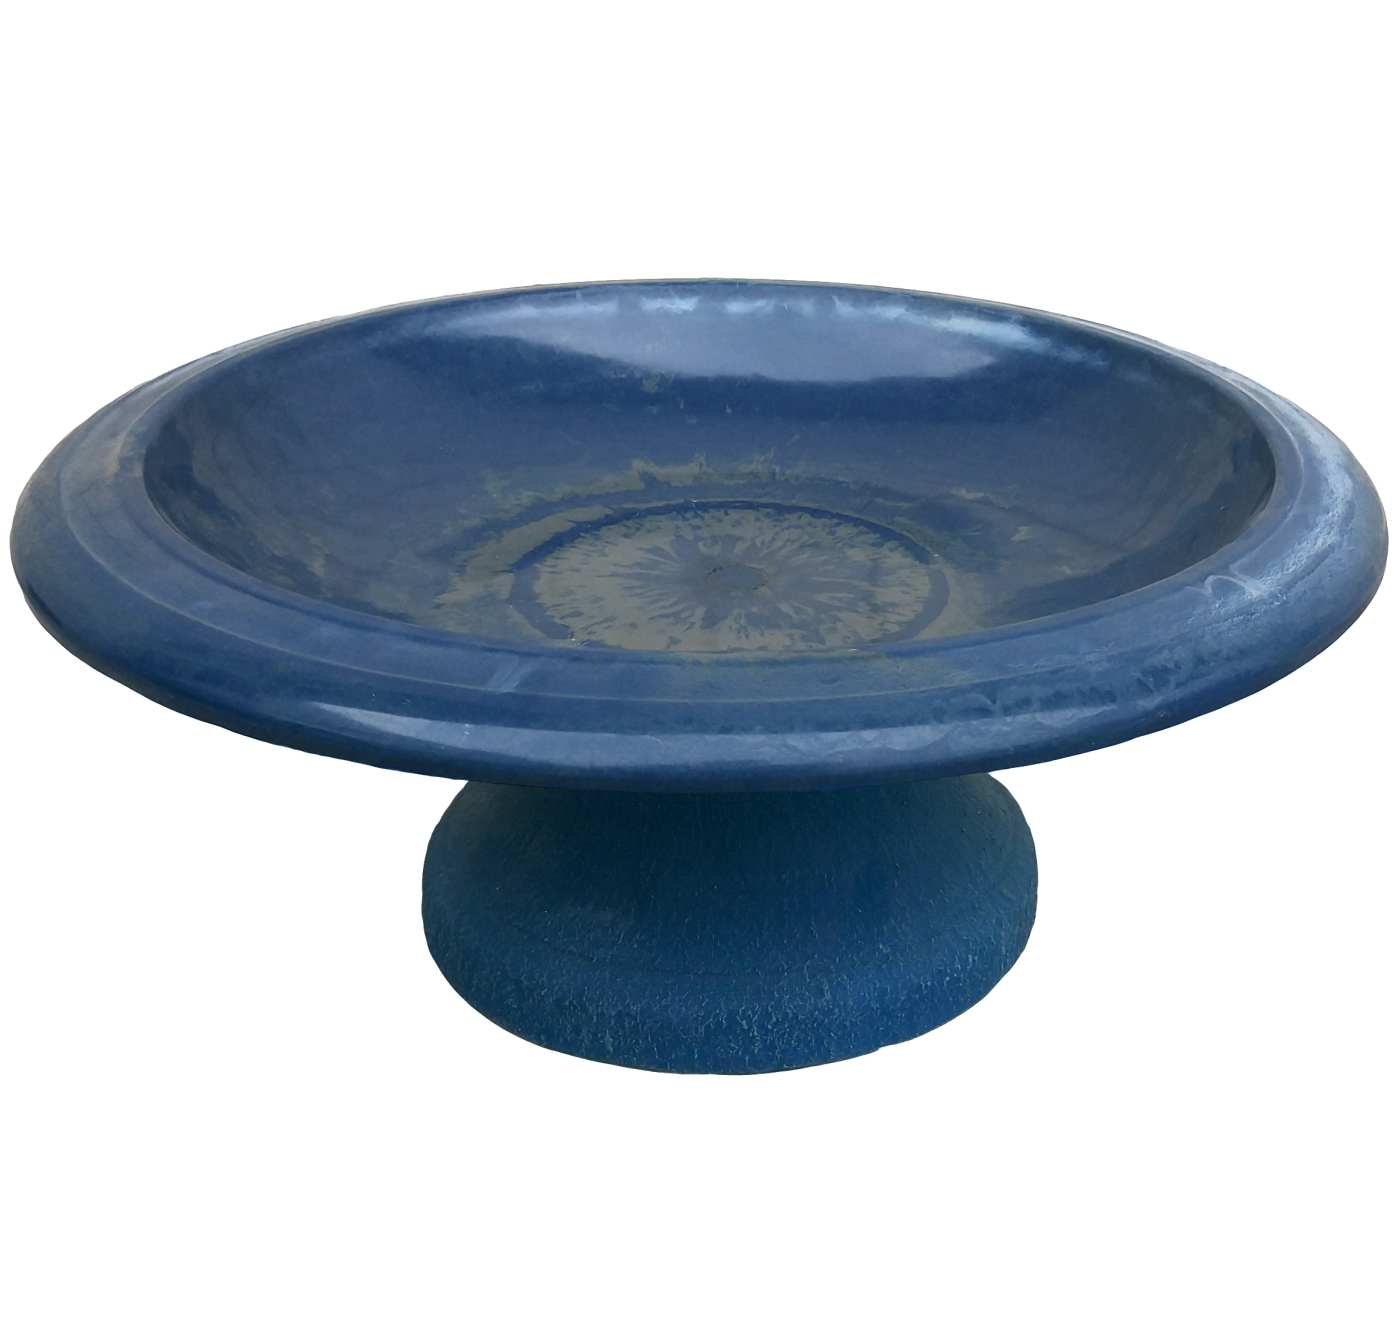 Tierra Fiber Clay Bird Bowl w/Small Base Navy Blue